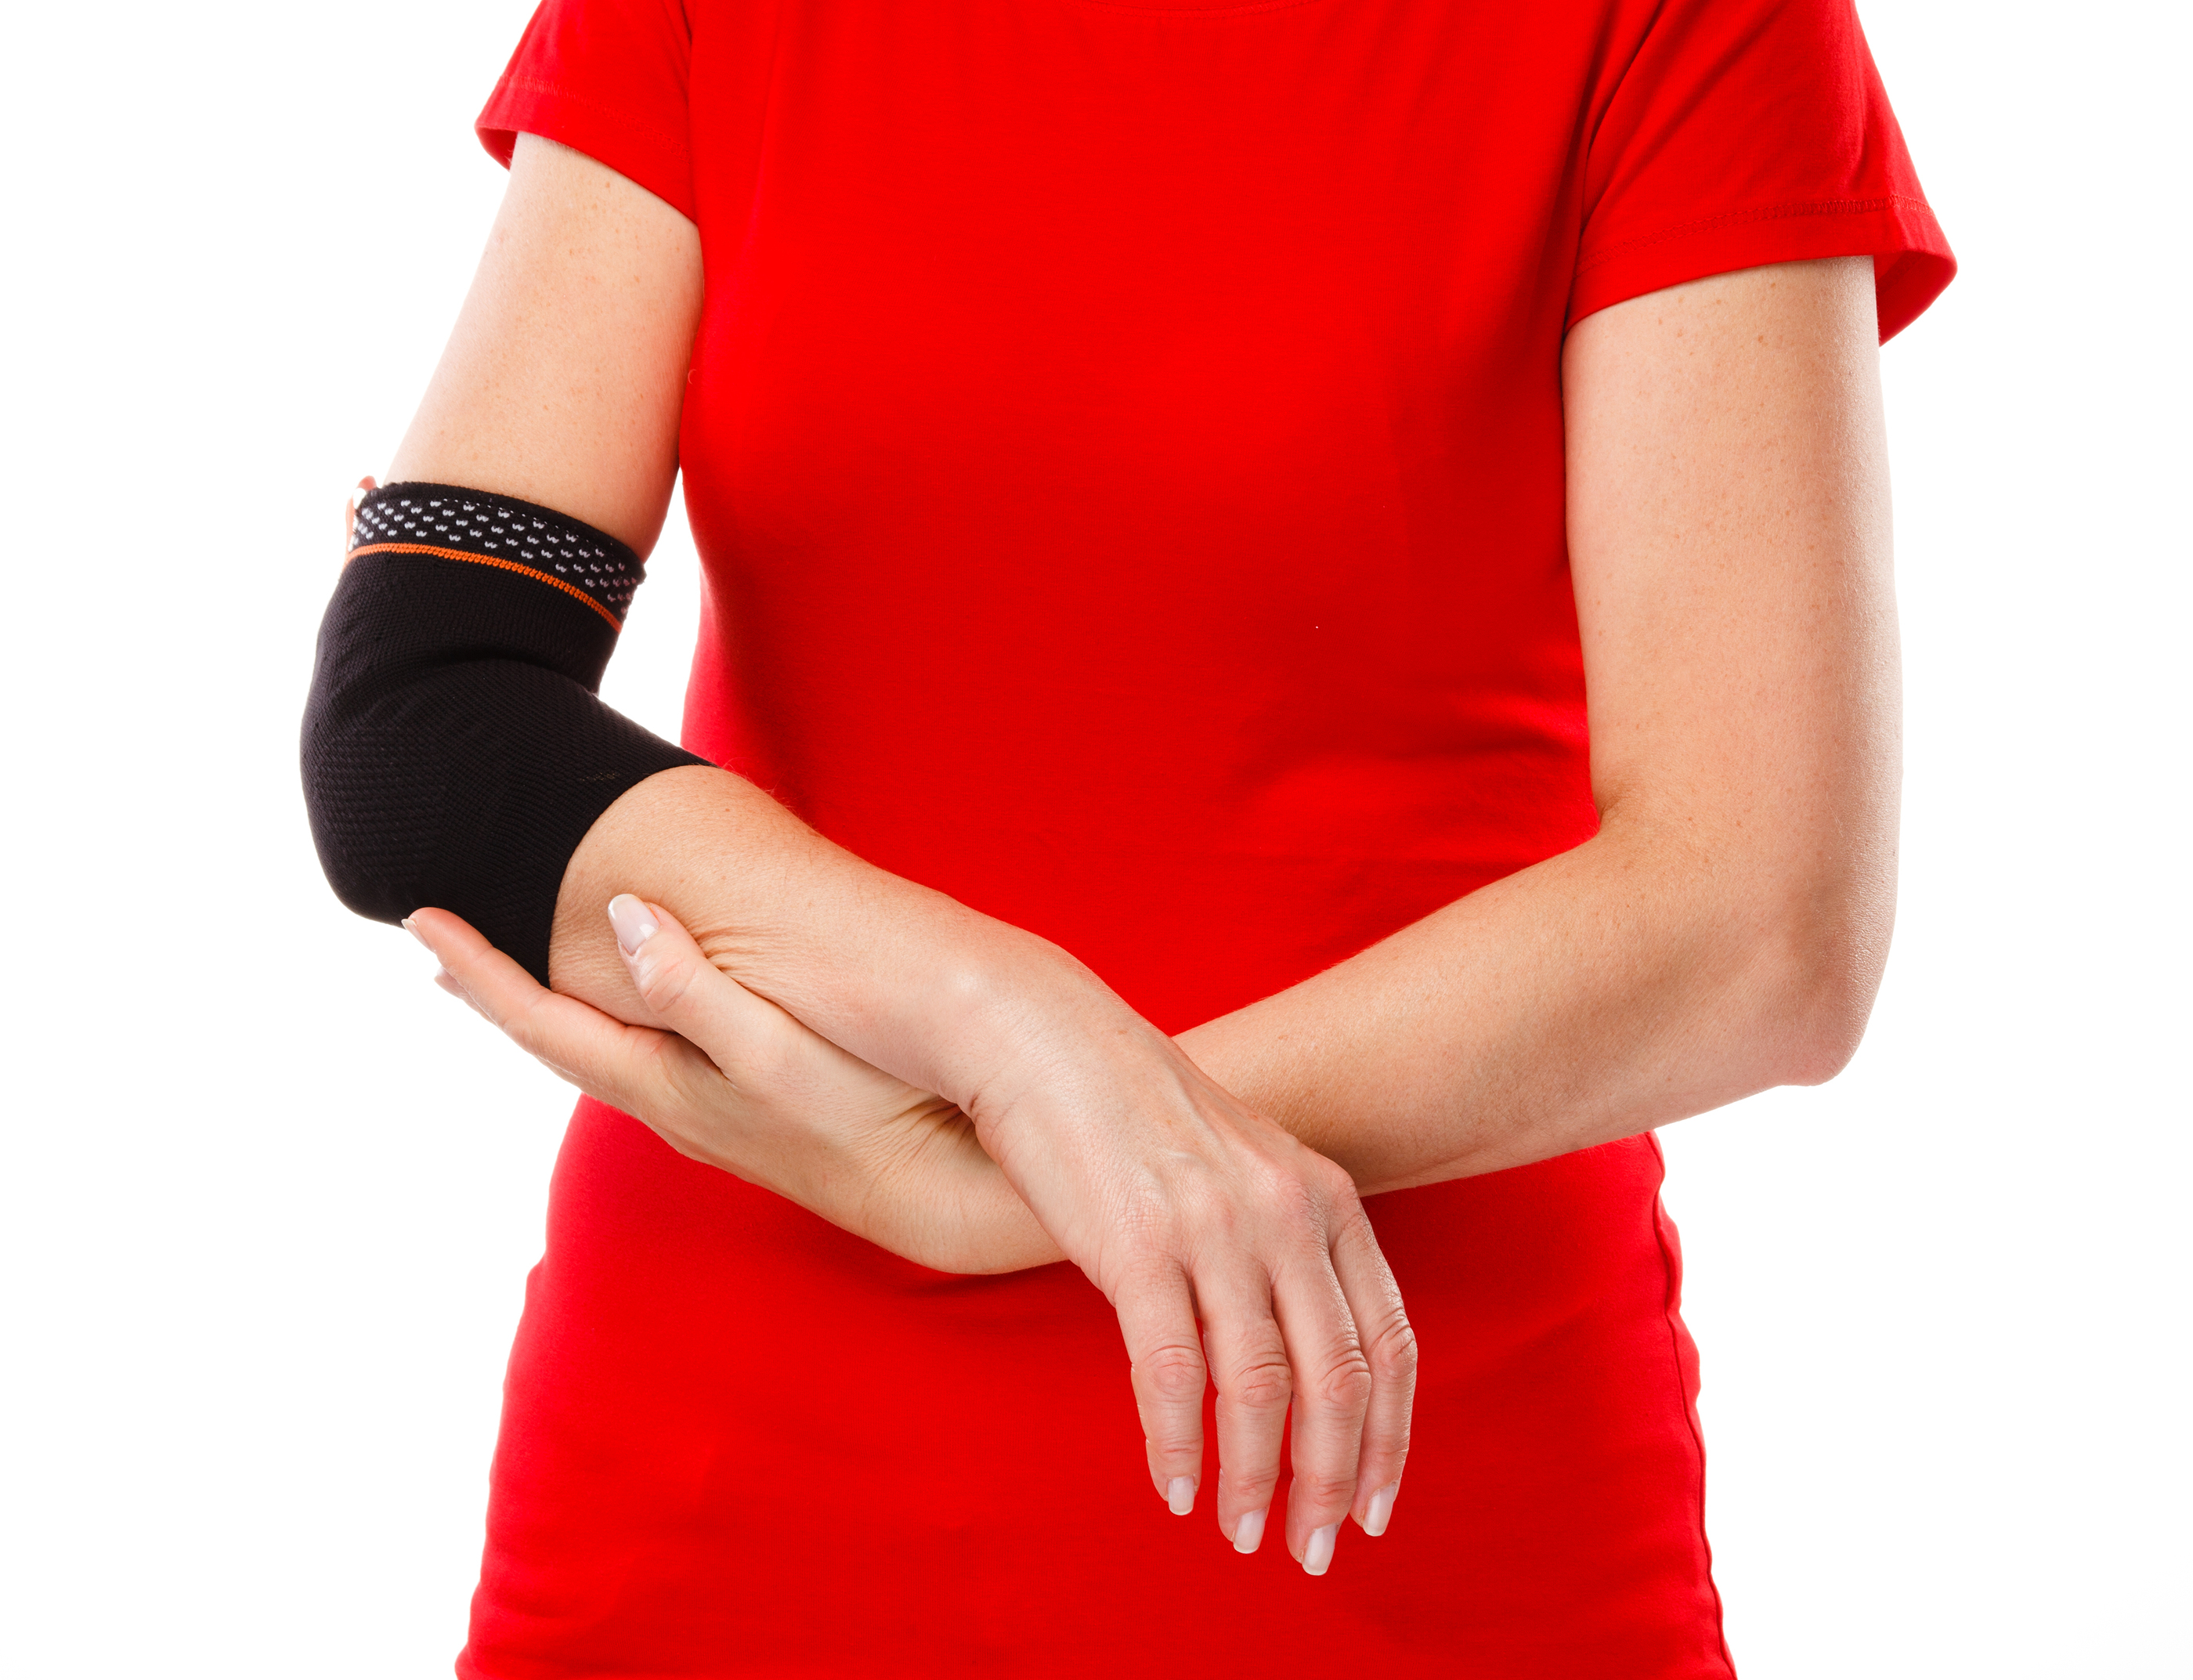 Tennis Elbow – Not Just For Tennis Players